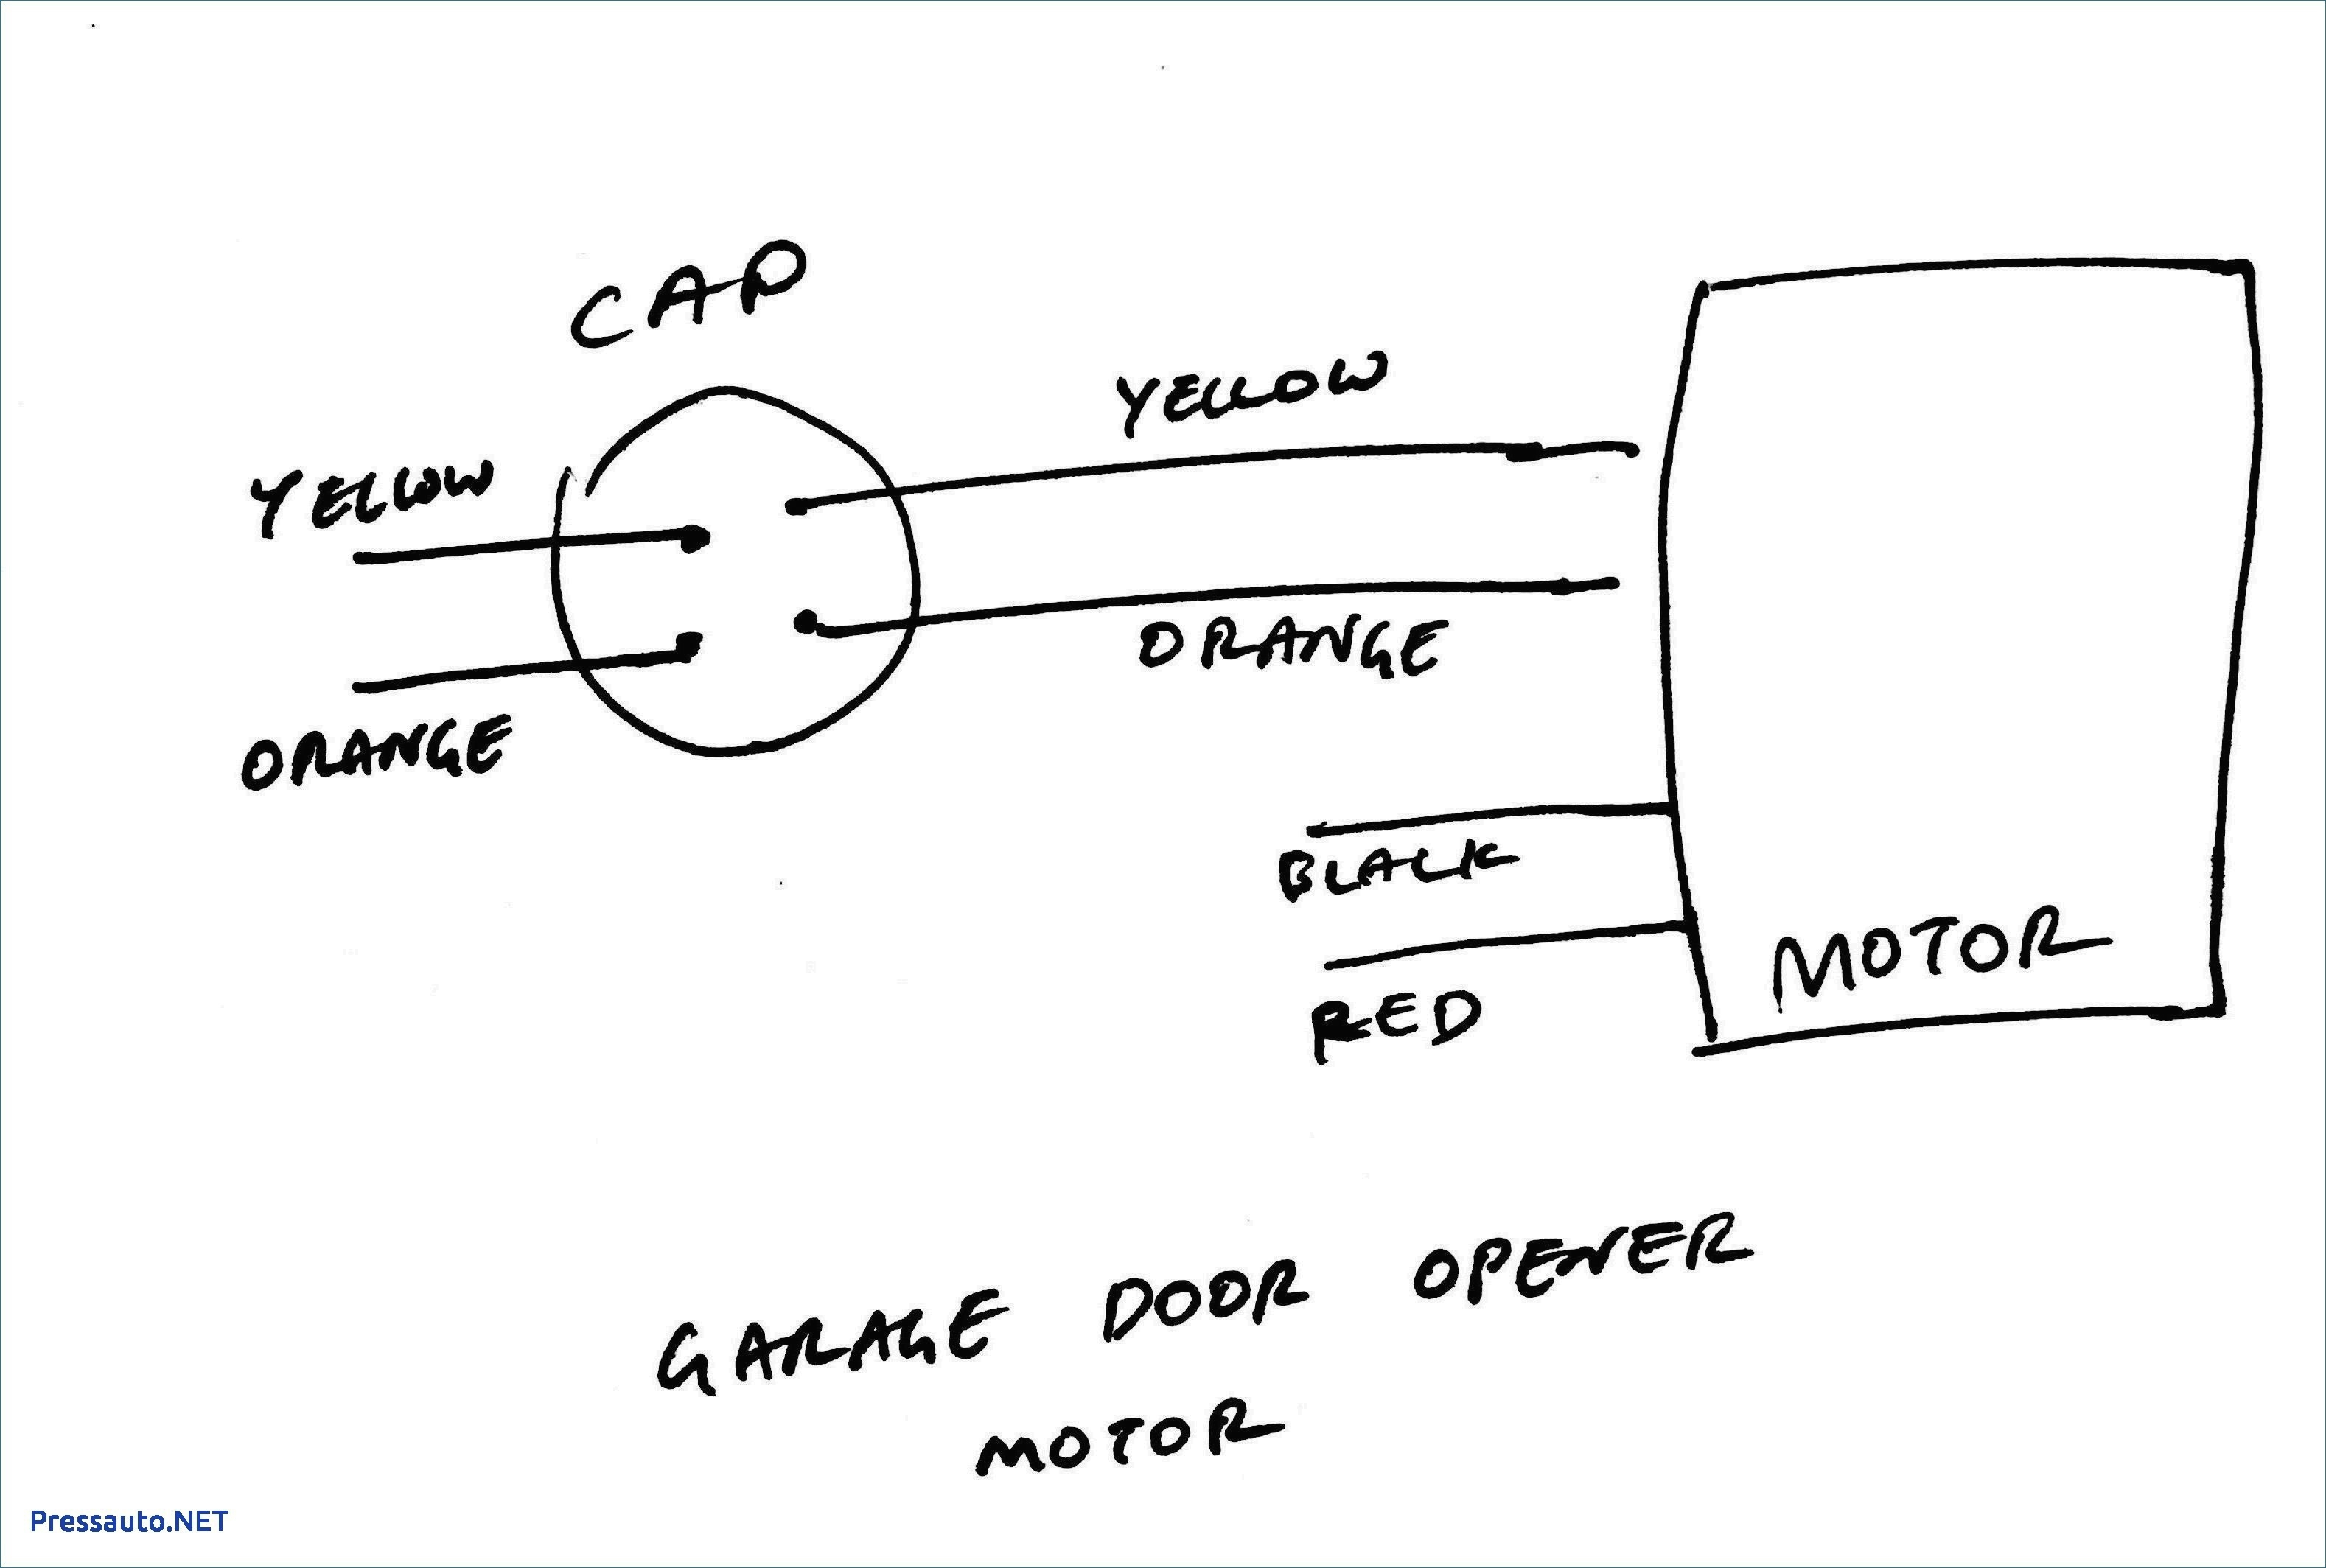 dc motor wiring diagram 4 wire free wiring diagram reliance electric motor  wiring diagram dc motor